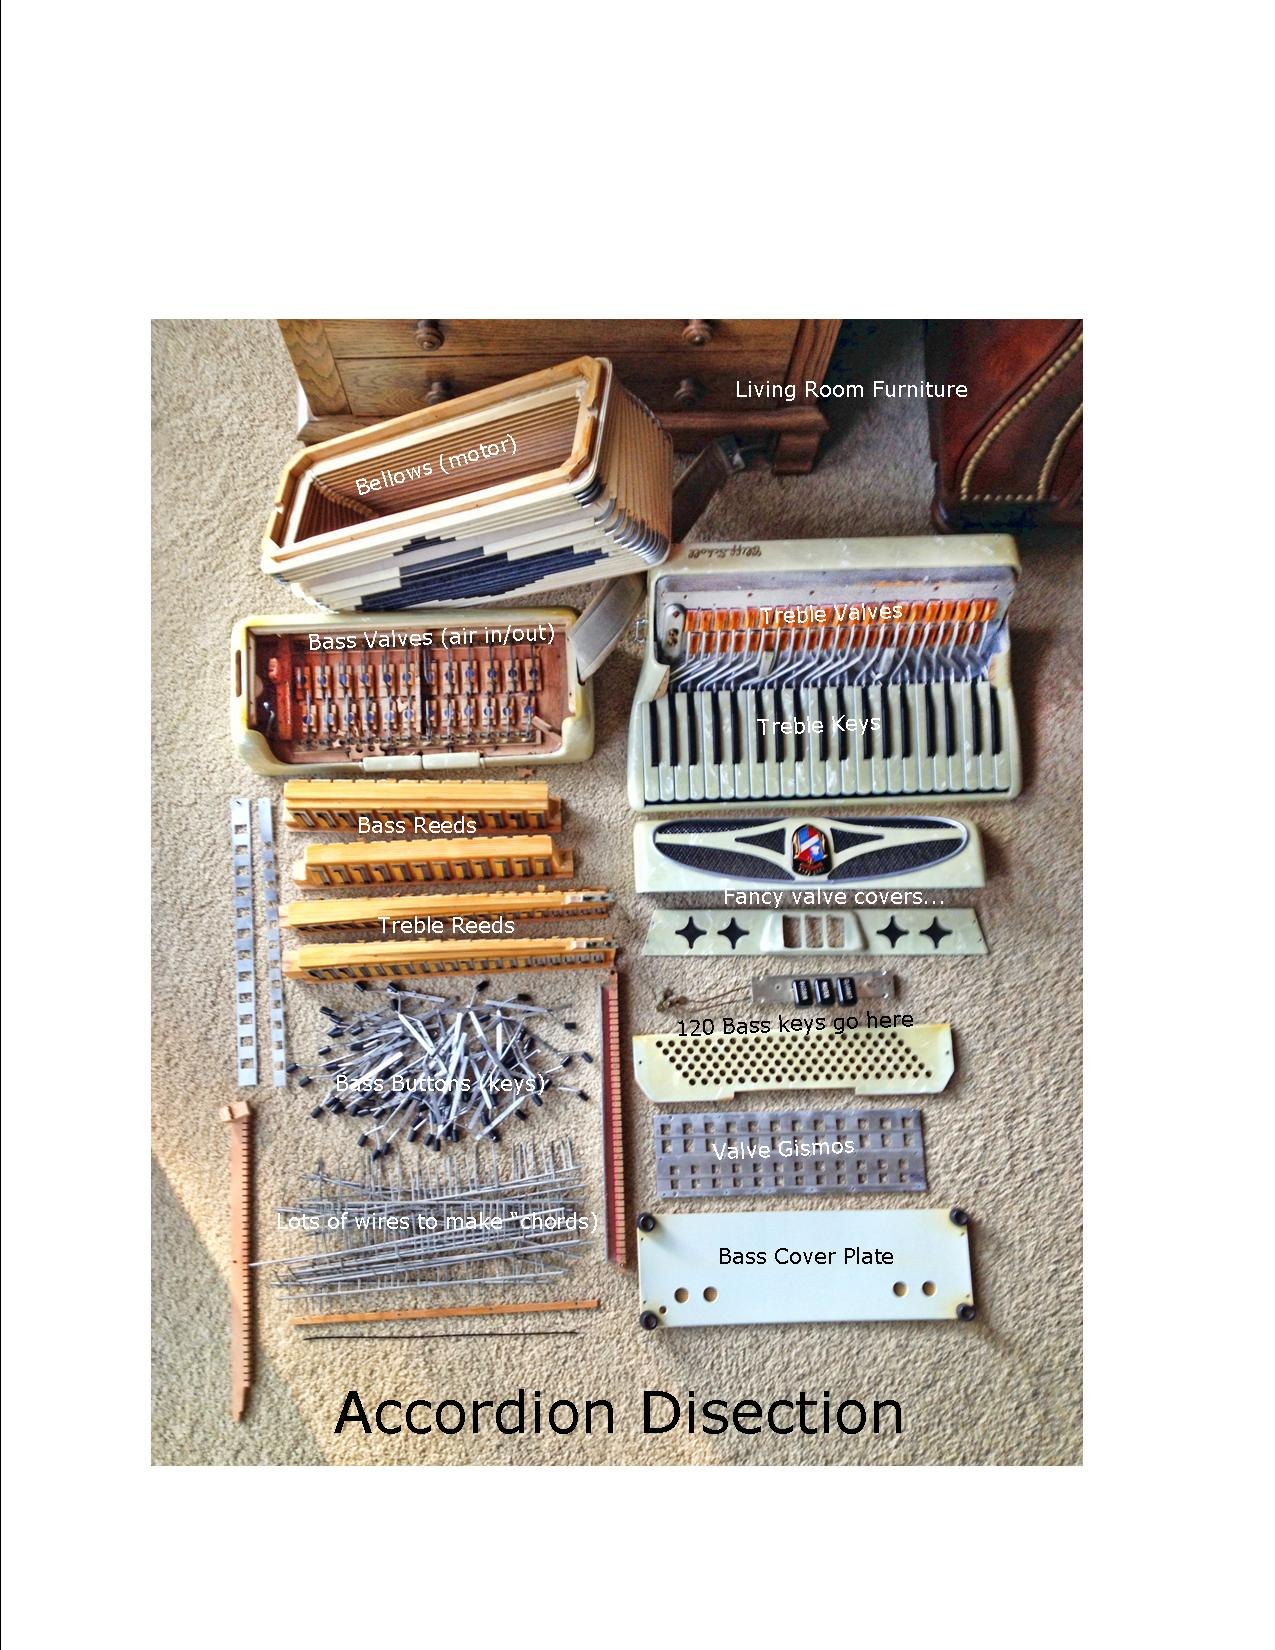 Accordion disection